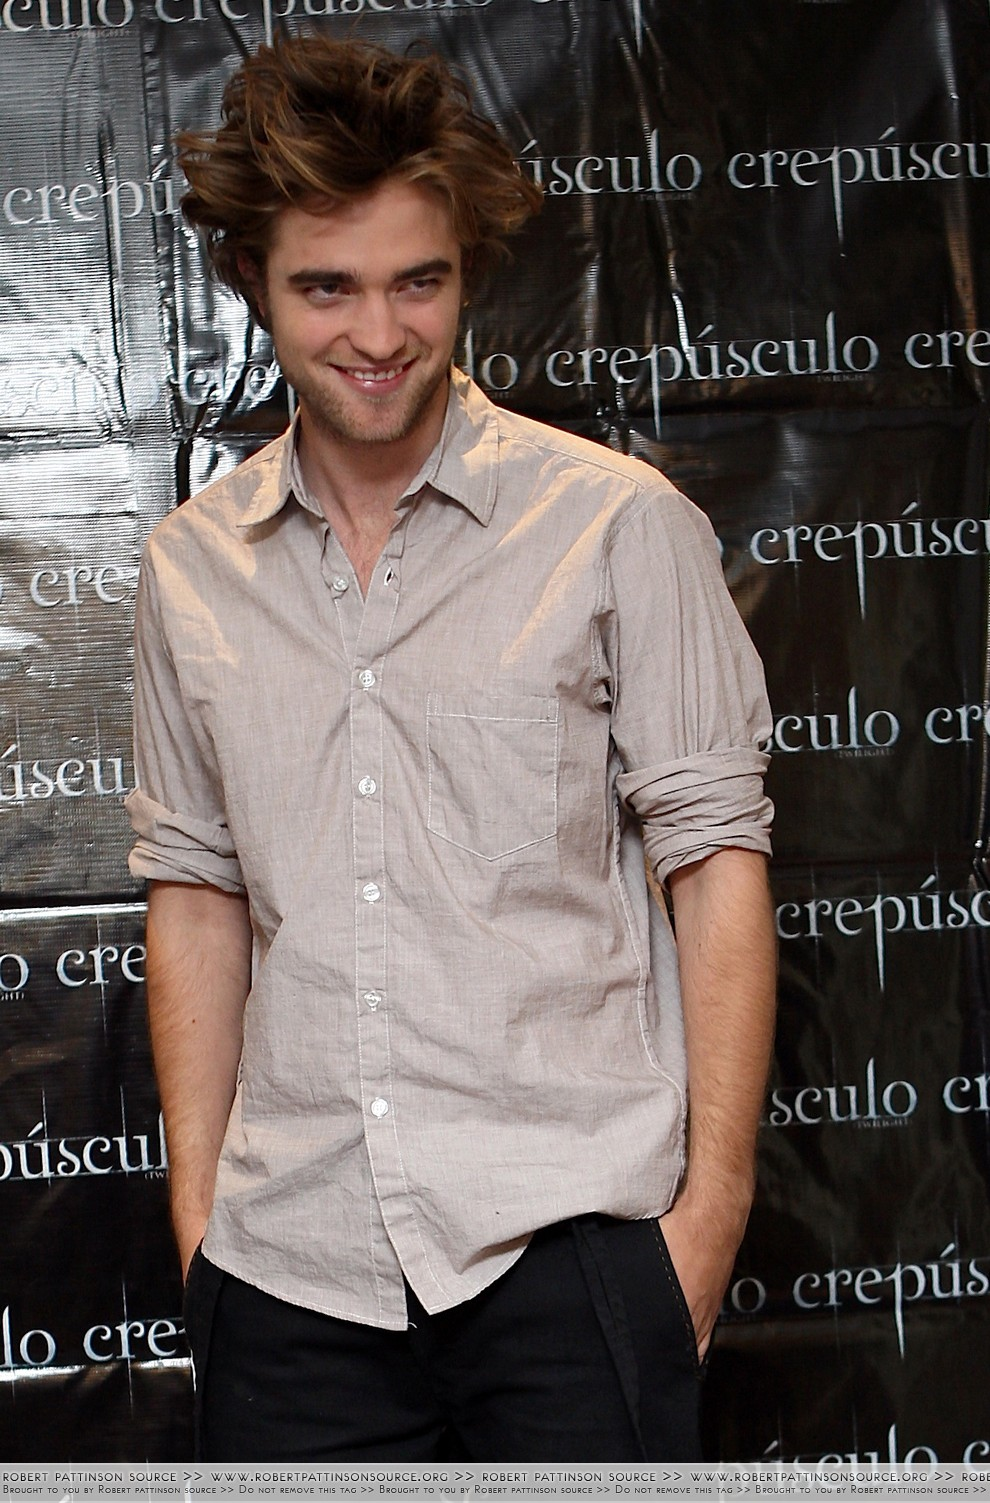 ACE Robert Pattinson 8 231008